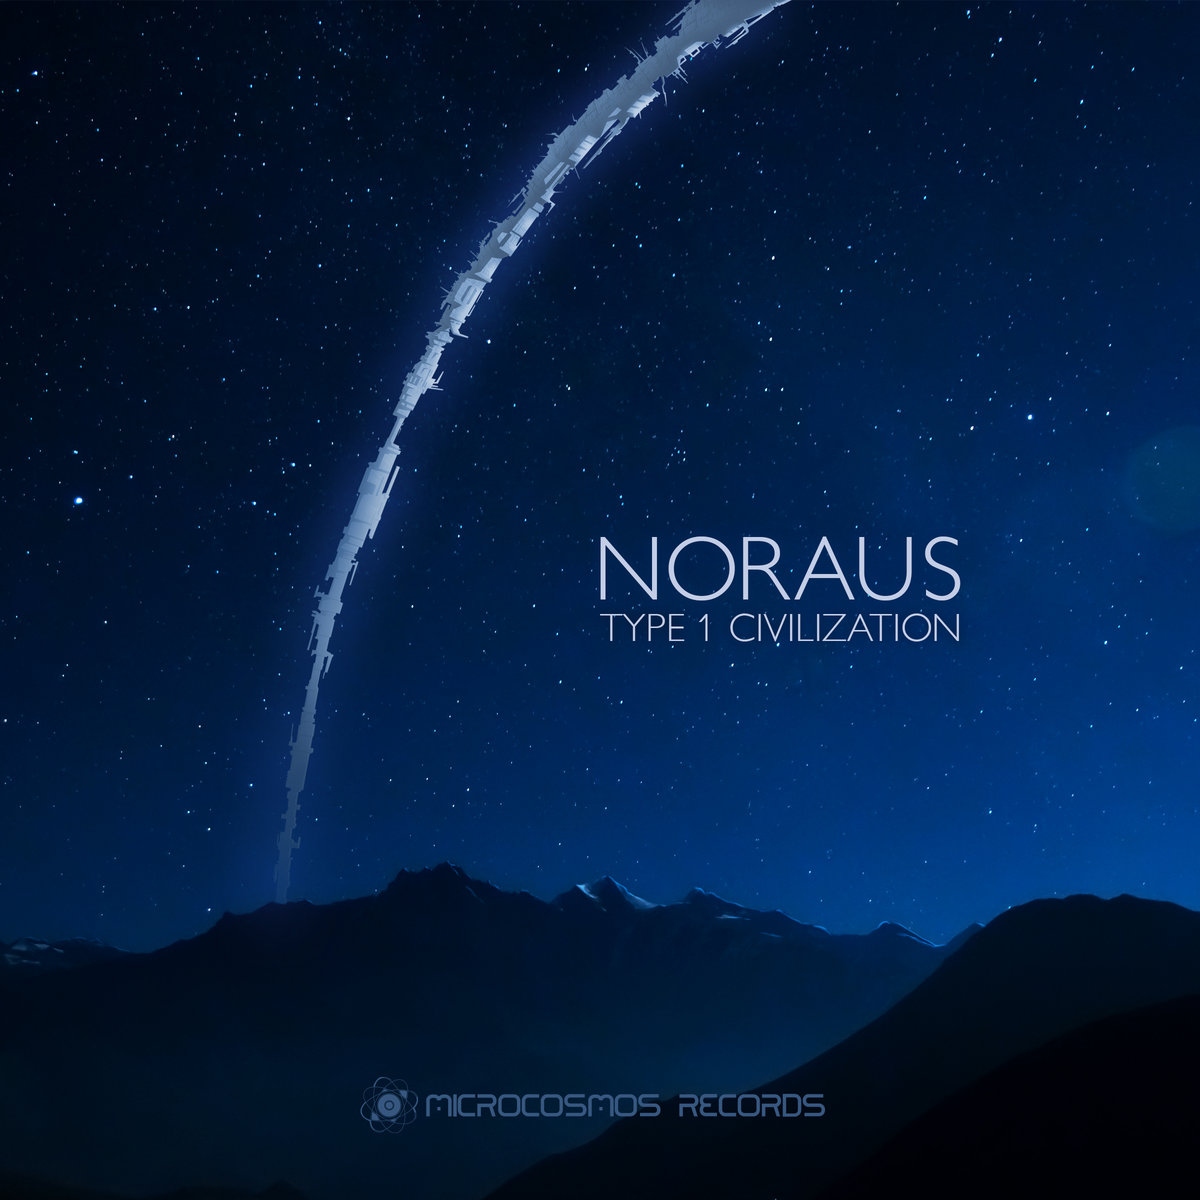 Noraus - Unite @ 'Type 1 Civilization' album (ambient, chill-out)